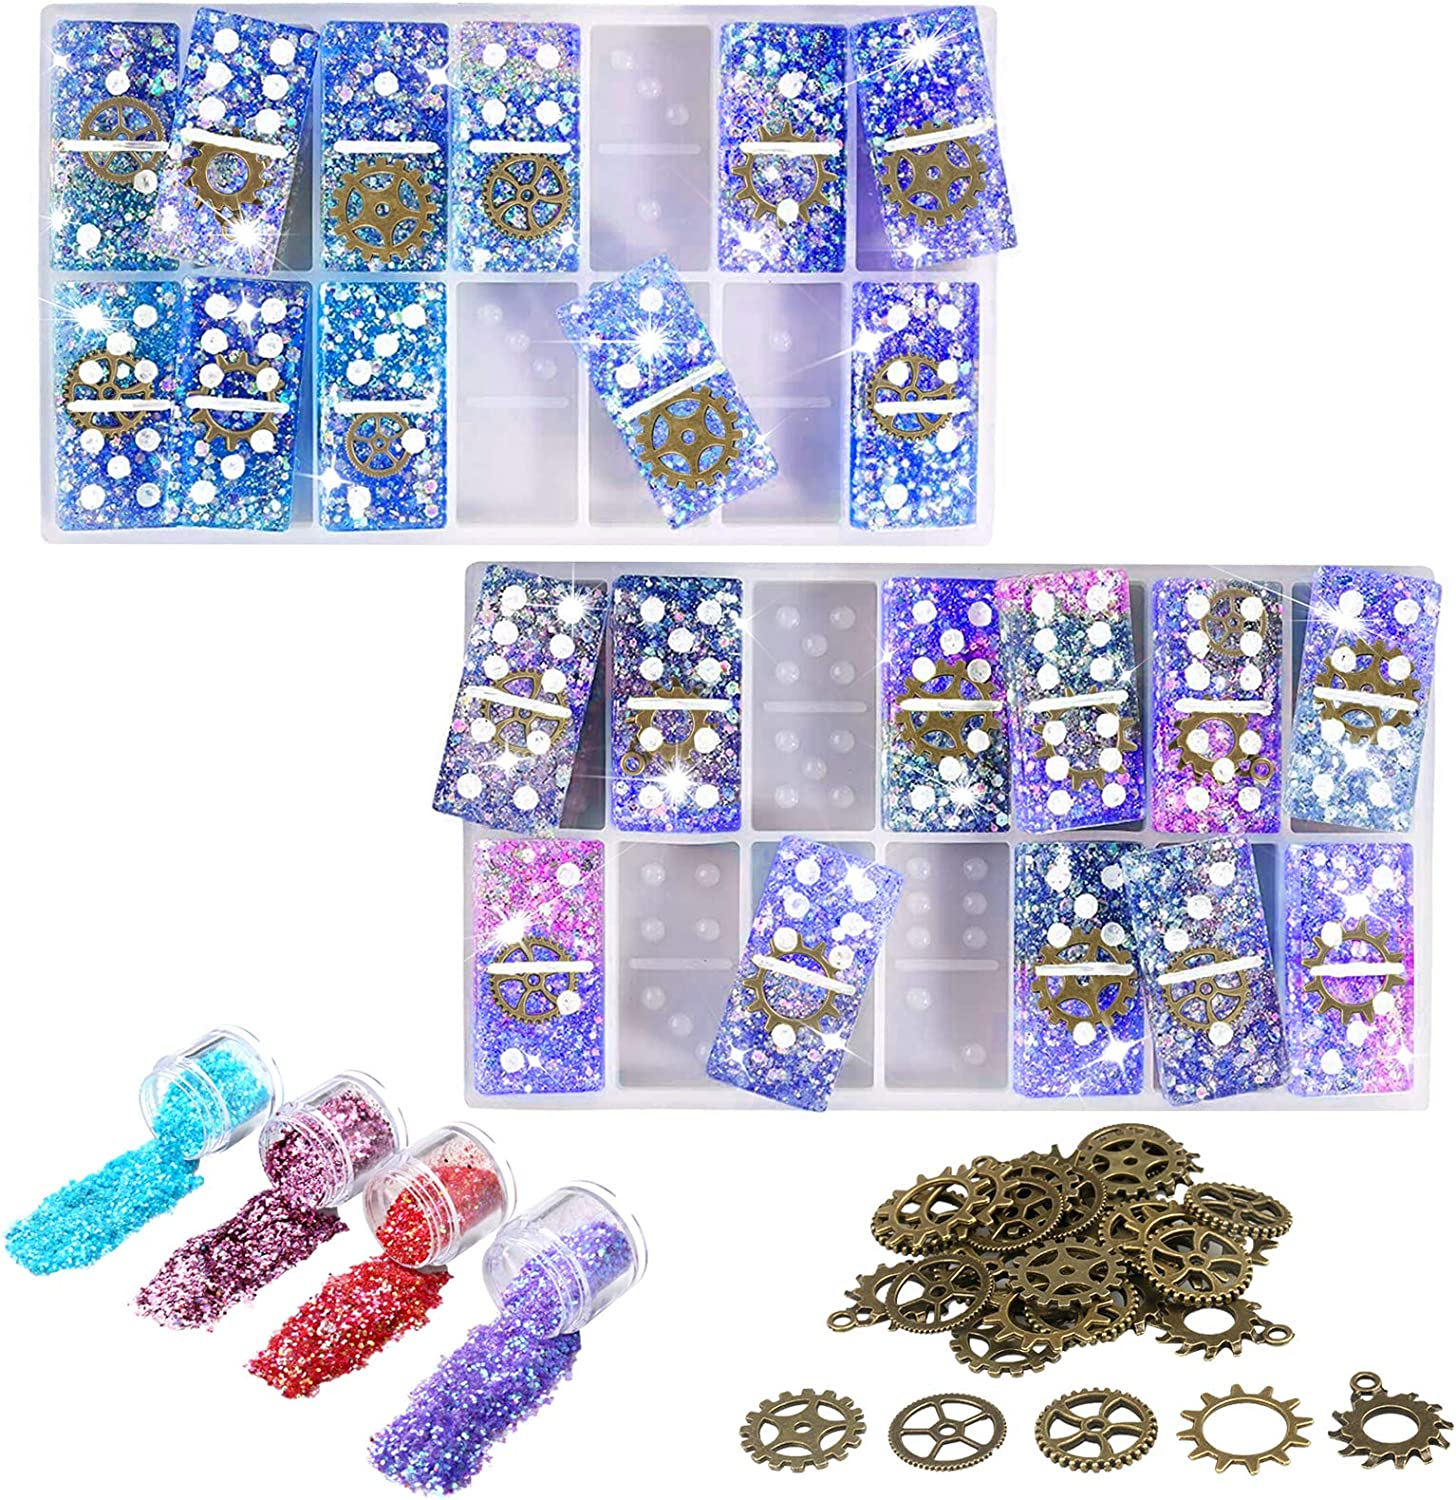 Resin safety Recommendation Molds Domino Game for Casting Silicone